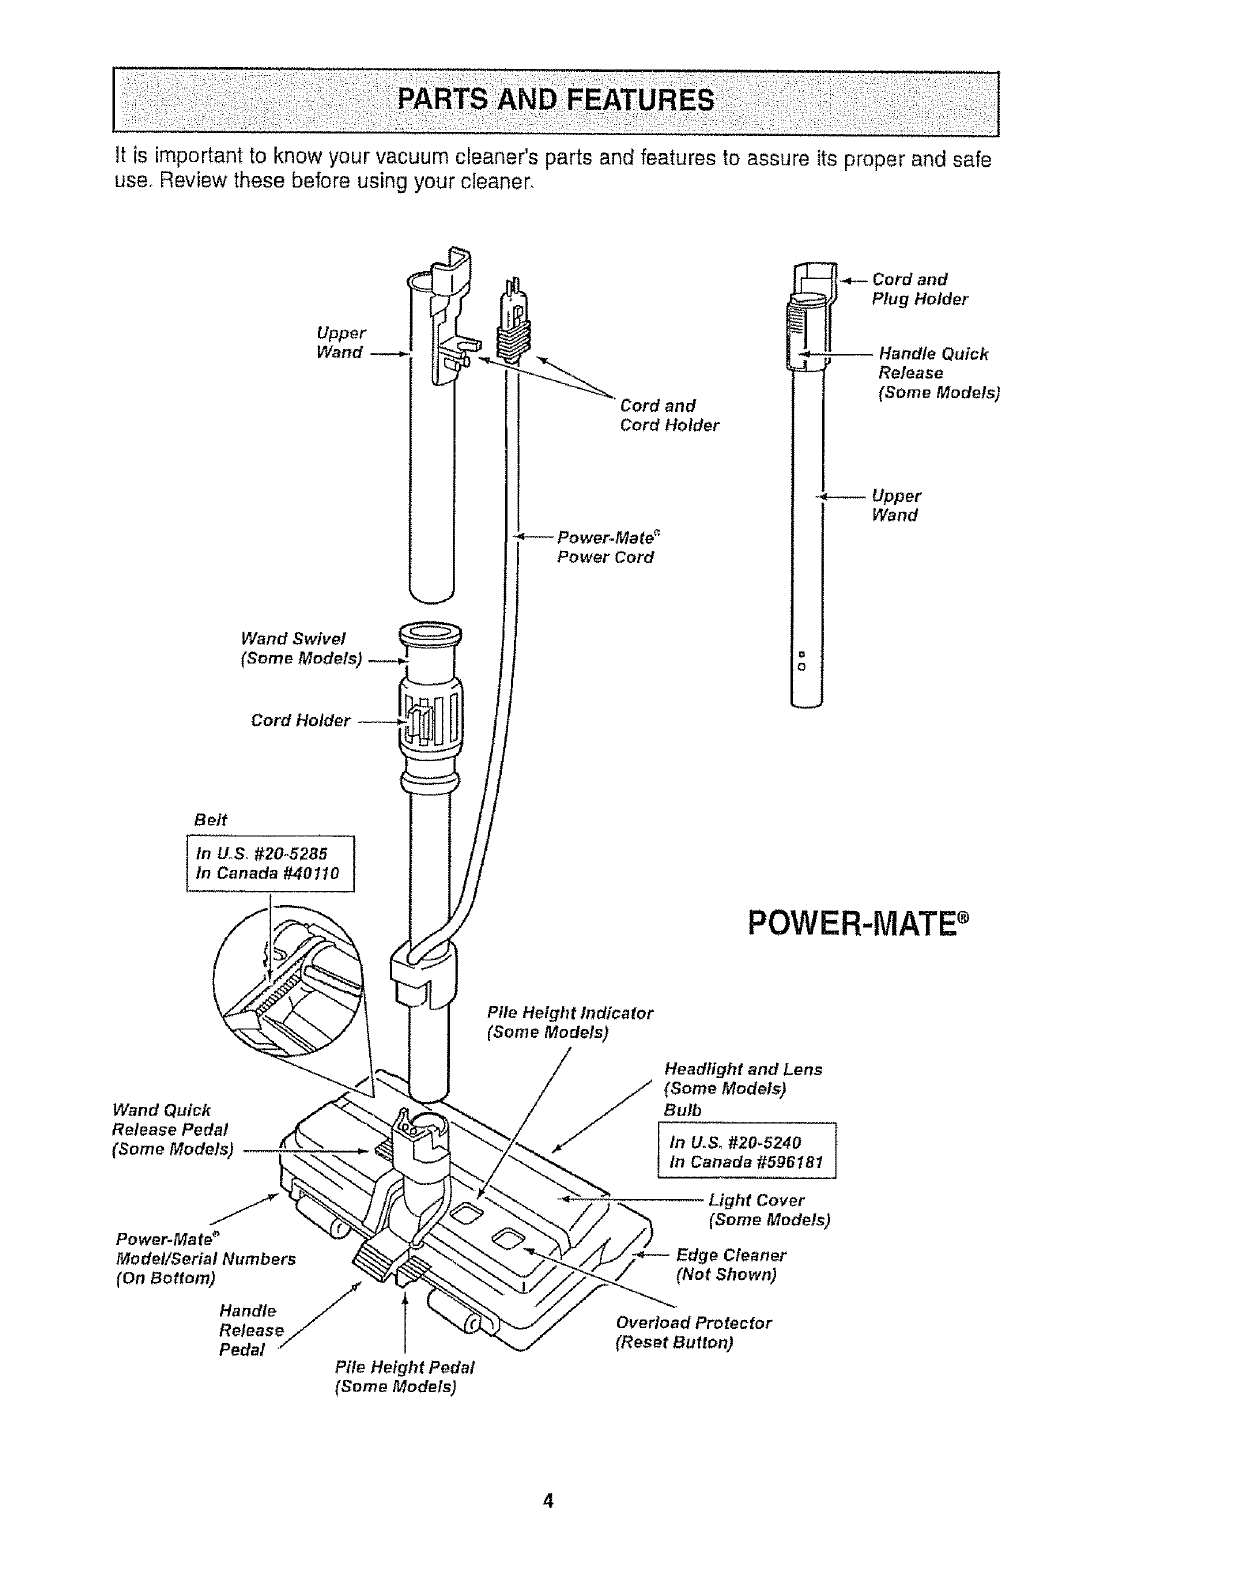 Page 4 of Kenmore Vacuum Cleaner 116.21513 User Guide